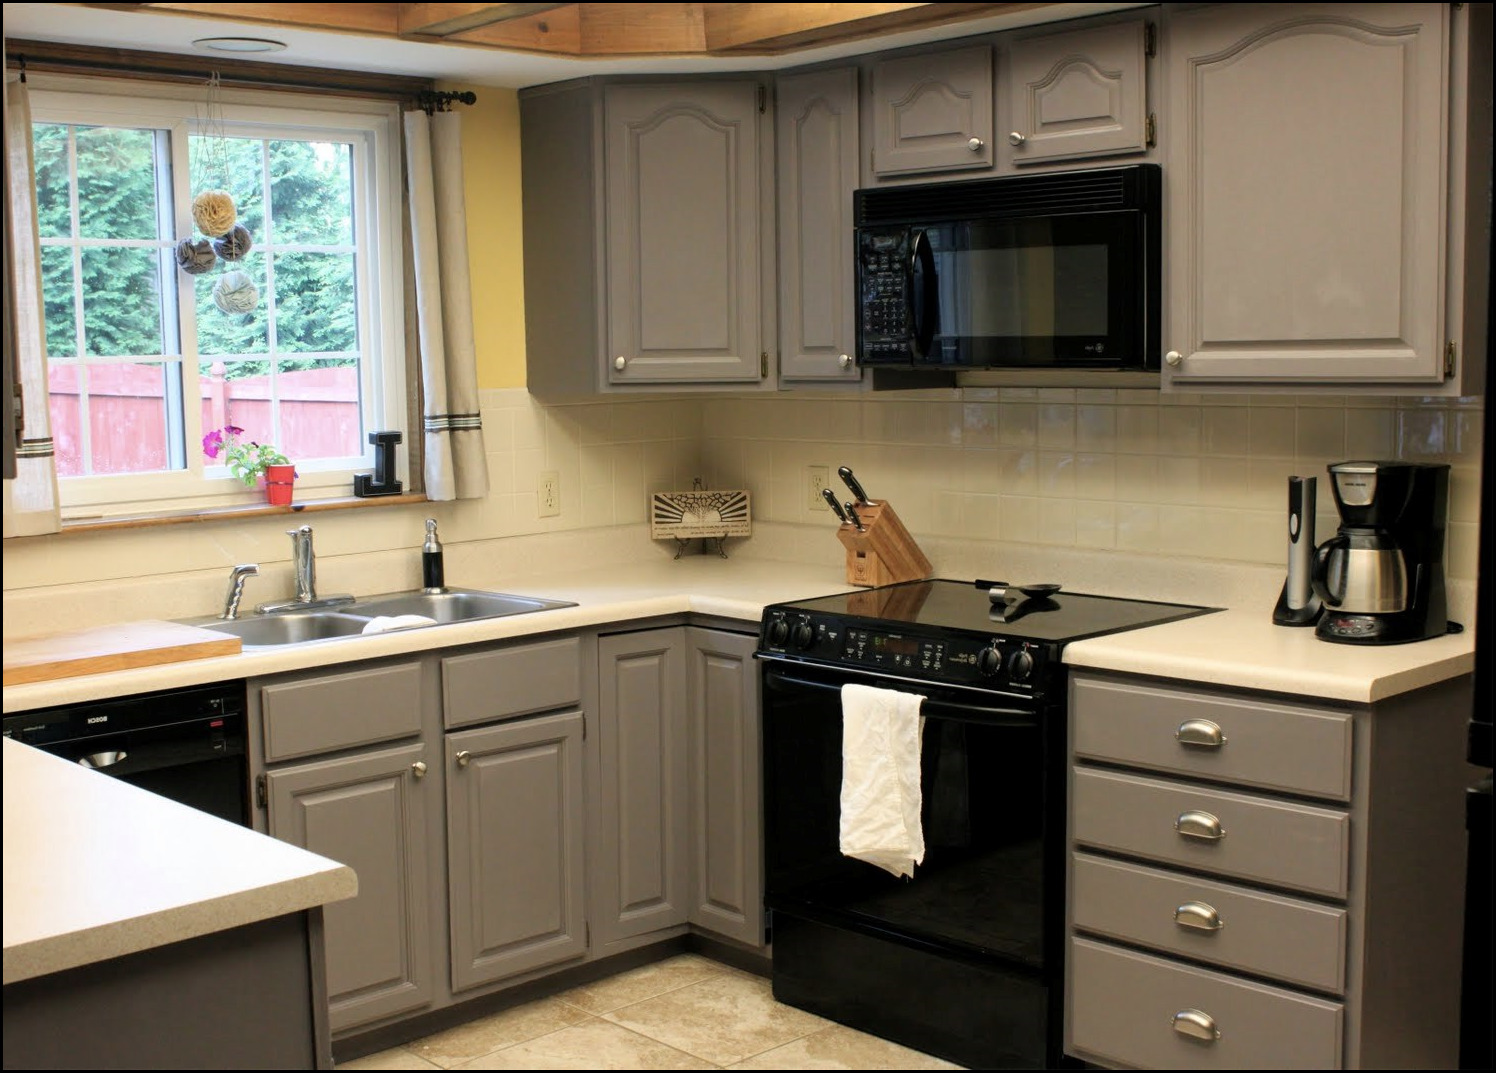 who paints kitchen cabinets can you spray paint kitchen cabinets 11 1496